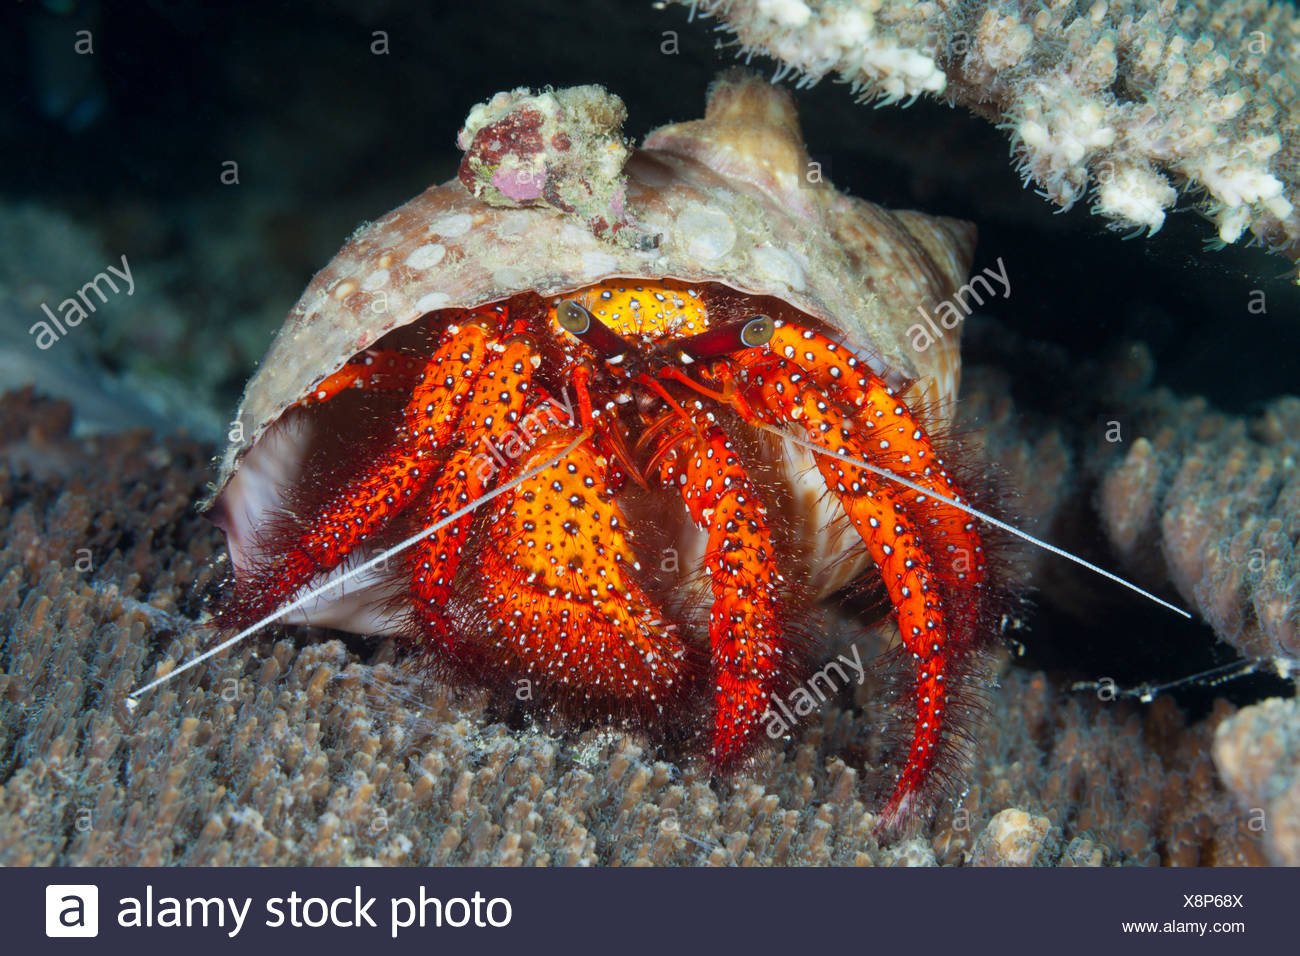 Red hermit crab, Dardanus megistos, ambon, the Moluccas, Indonesia - Stock Image